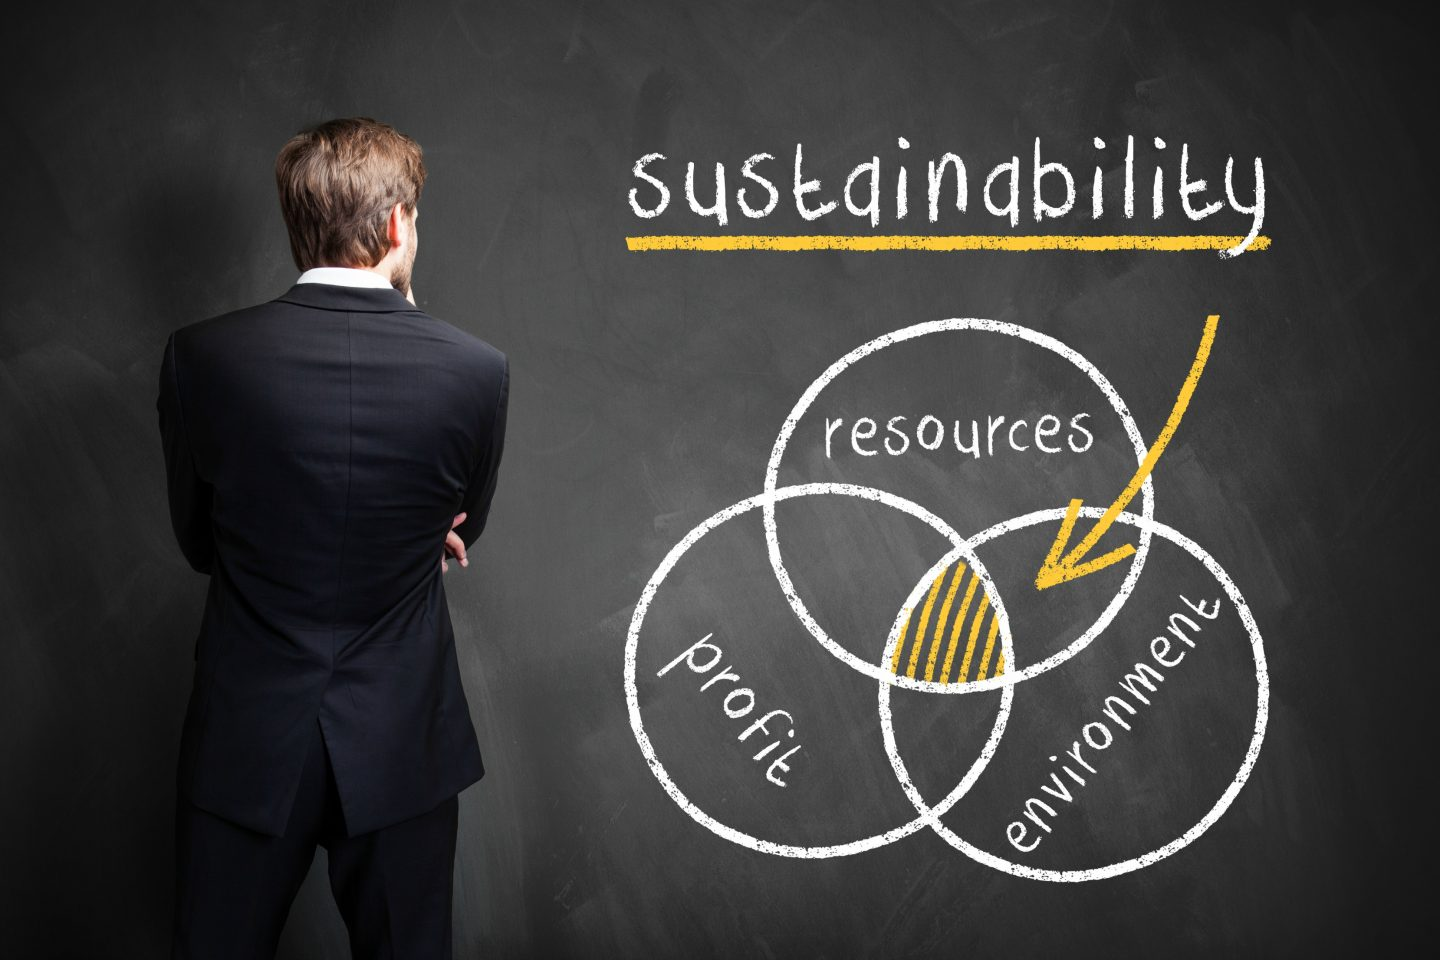 Making Business Sustainable: Starting Tips